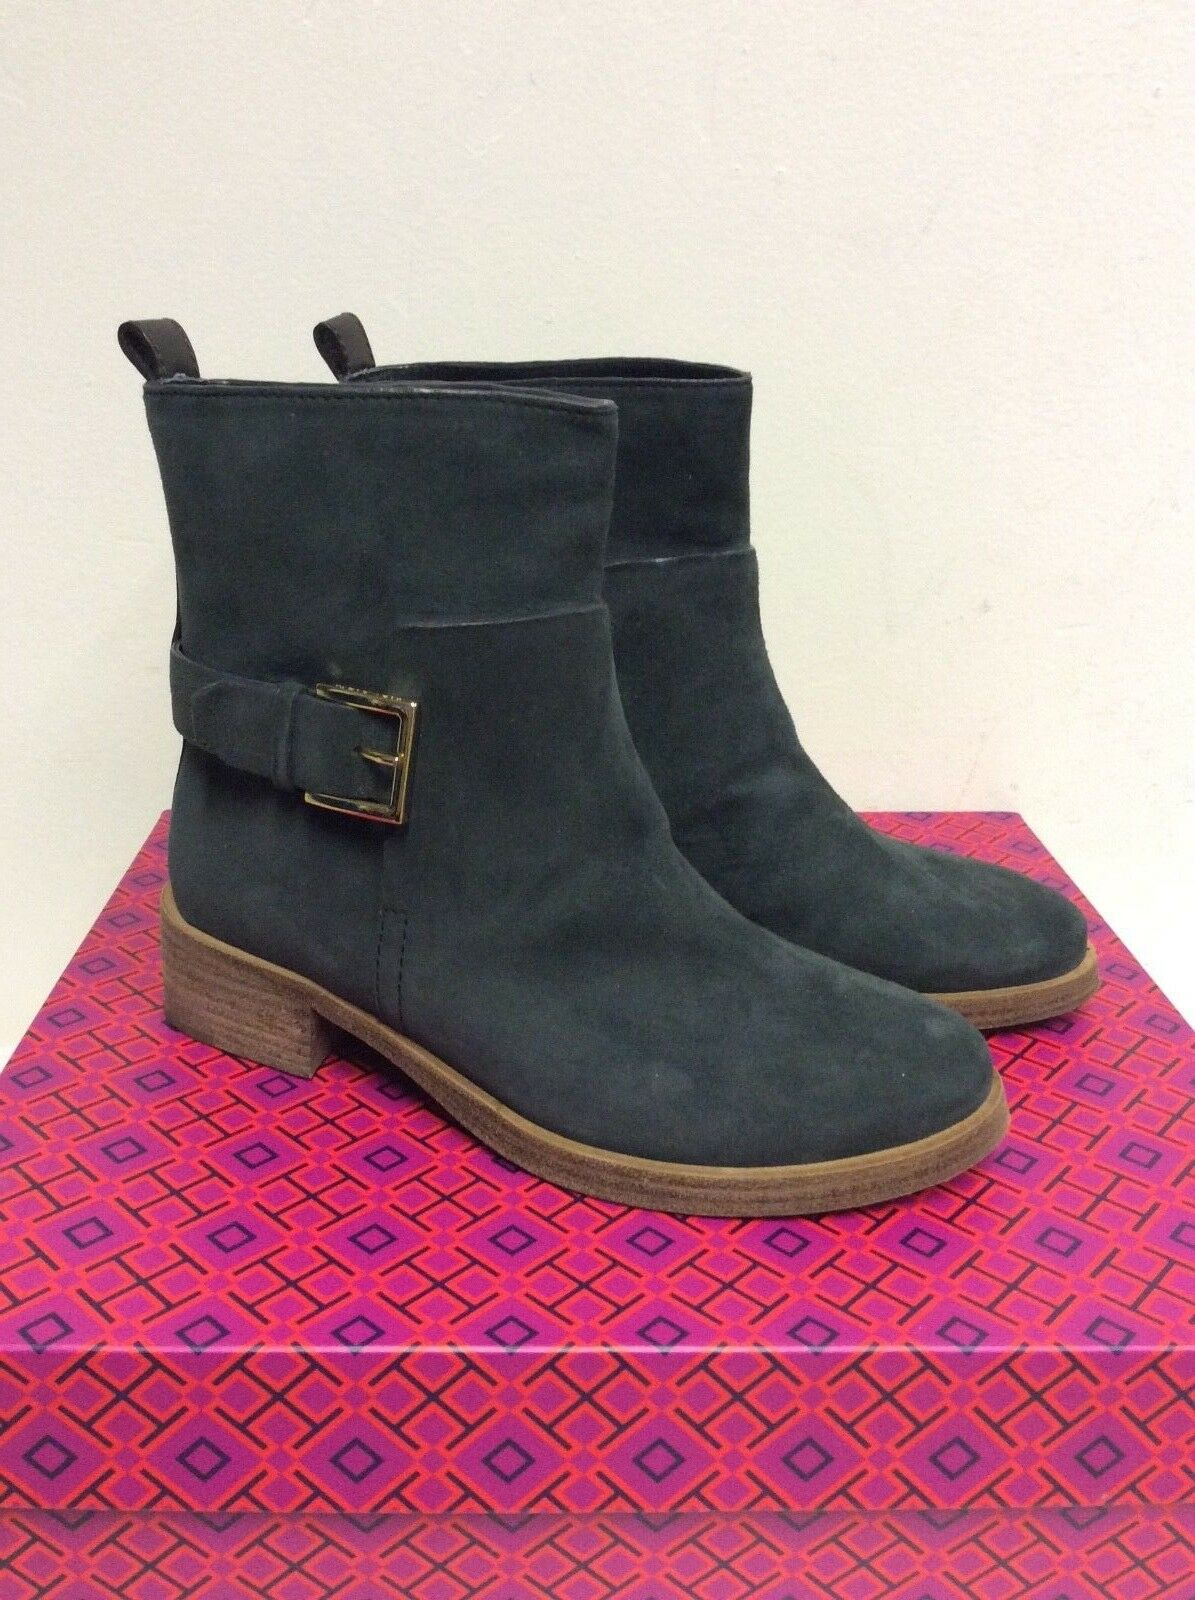 Tory Burch Irlandais Anthracite Ridley Daim Boucle Trim Cheville Bottes Taille 4 37